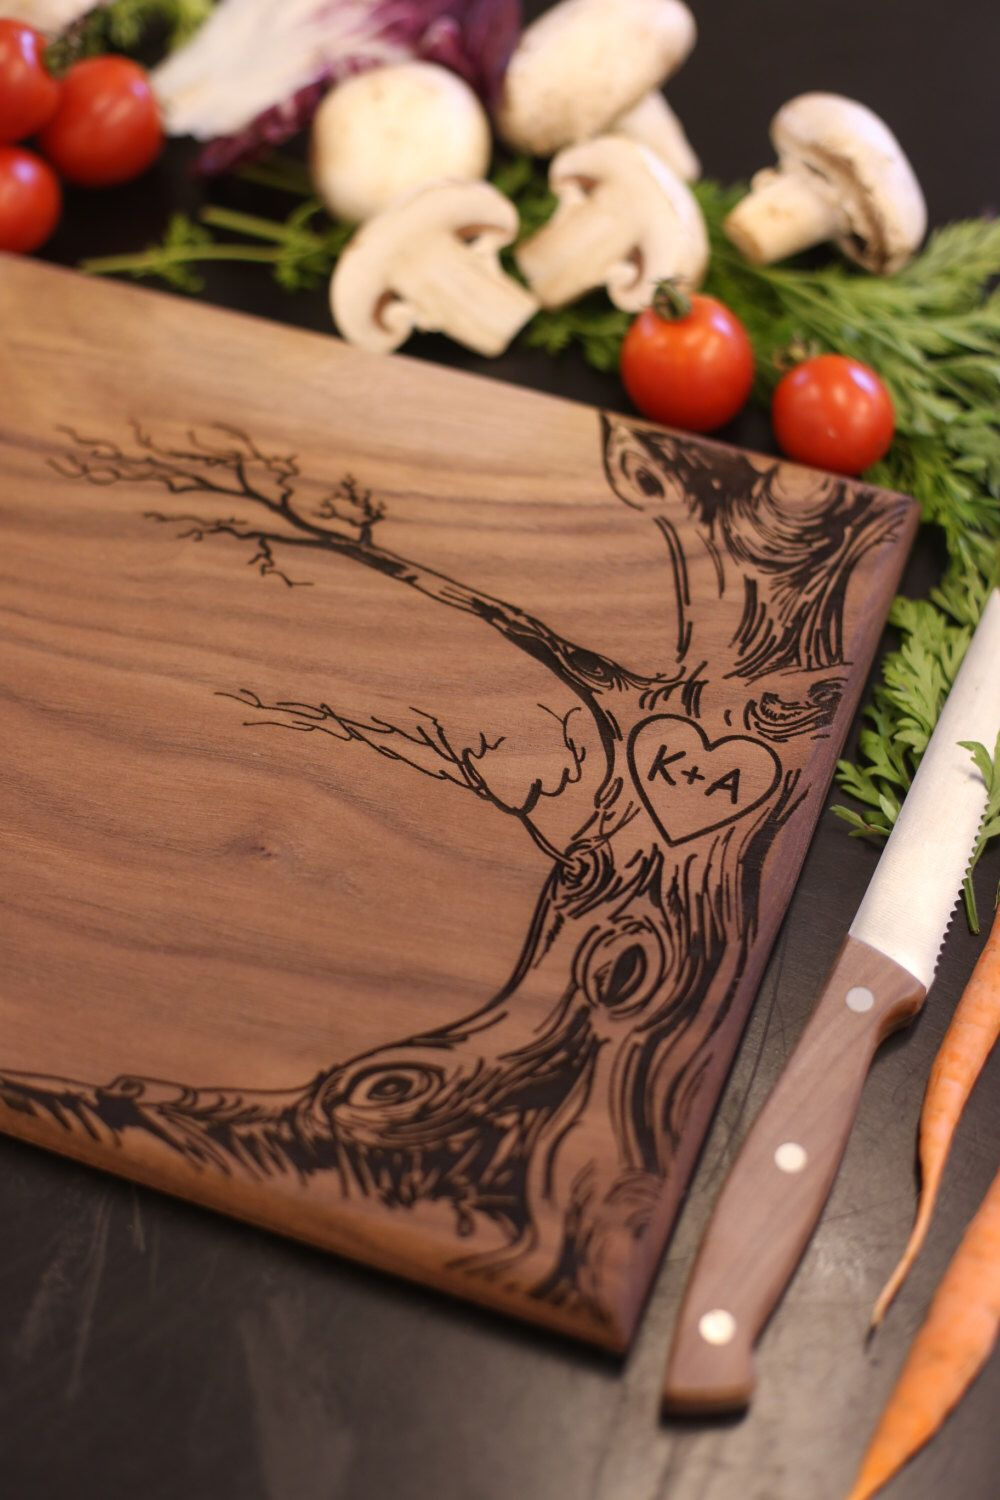 personalized cutting board newlyweds christmas gift bridal shower gift wedding gift engraved love tree item number mhd20019 by braggingbags on etsy